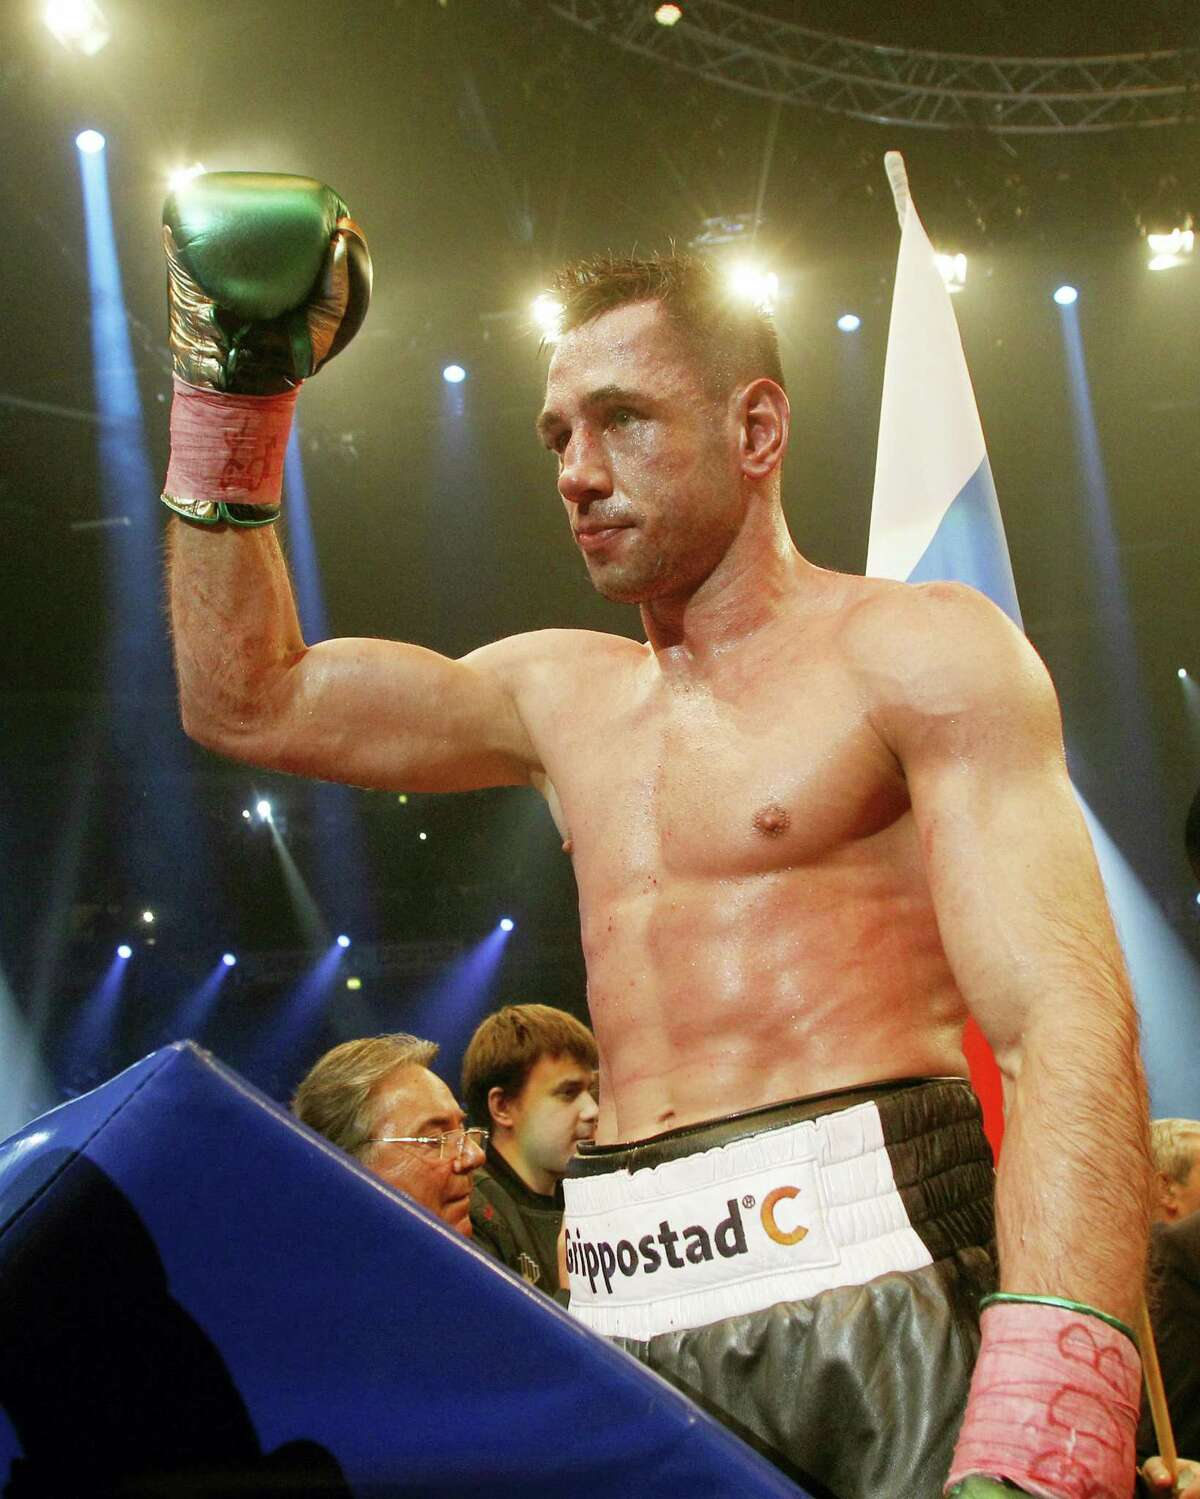 In this Feb. 20, 2016 picture, Germany's Felix Sturm,celebrates after a WBA super middleweight title bout against Russia's Fedor Chudinov in Oberhausen, Germany.